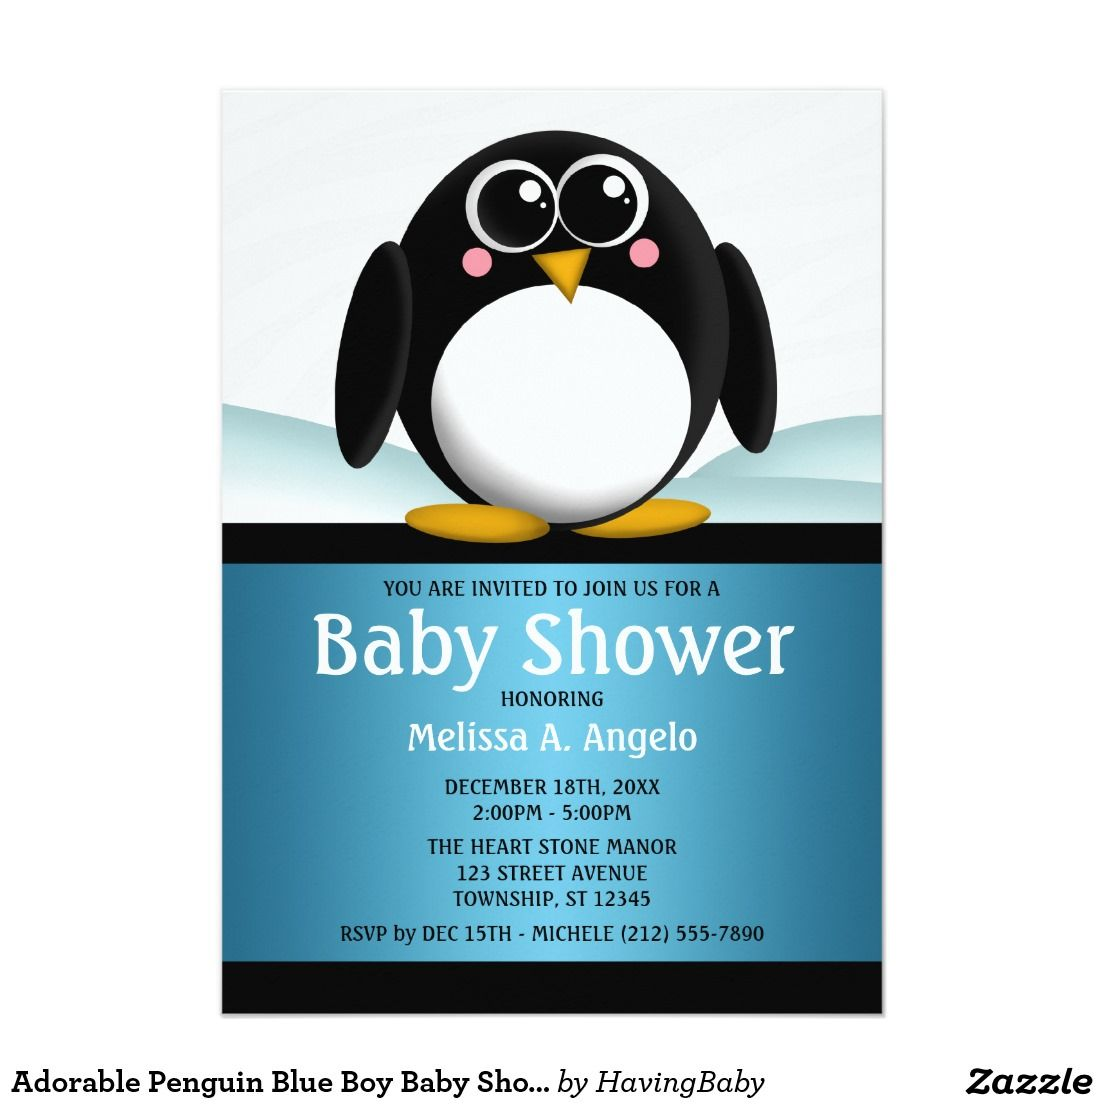 Adorable Penguin Blue Boy Baby Shower Invitations | Boy baby showers ...